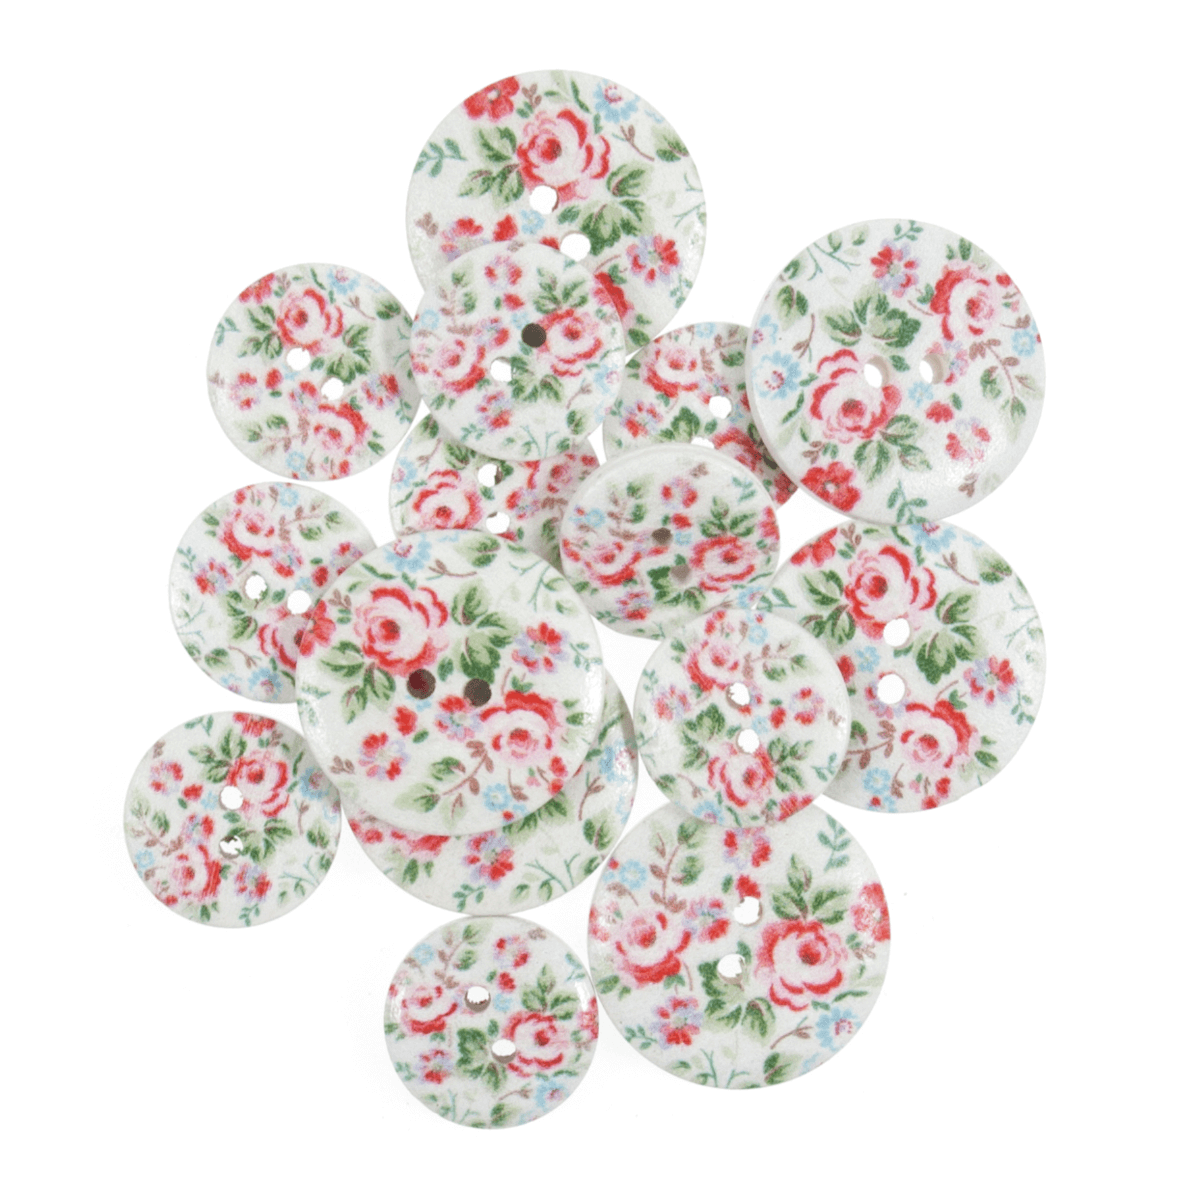 15 x Assorted Vintage Rose Stamp Wooden Craft Buttons 18mm - 25mm